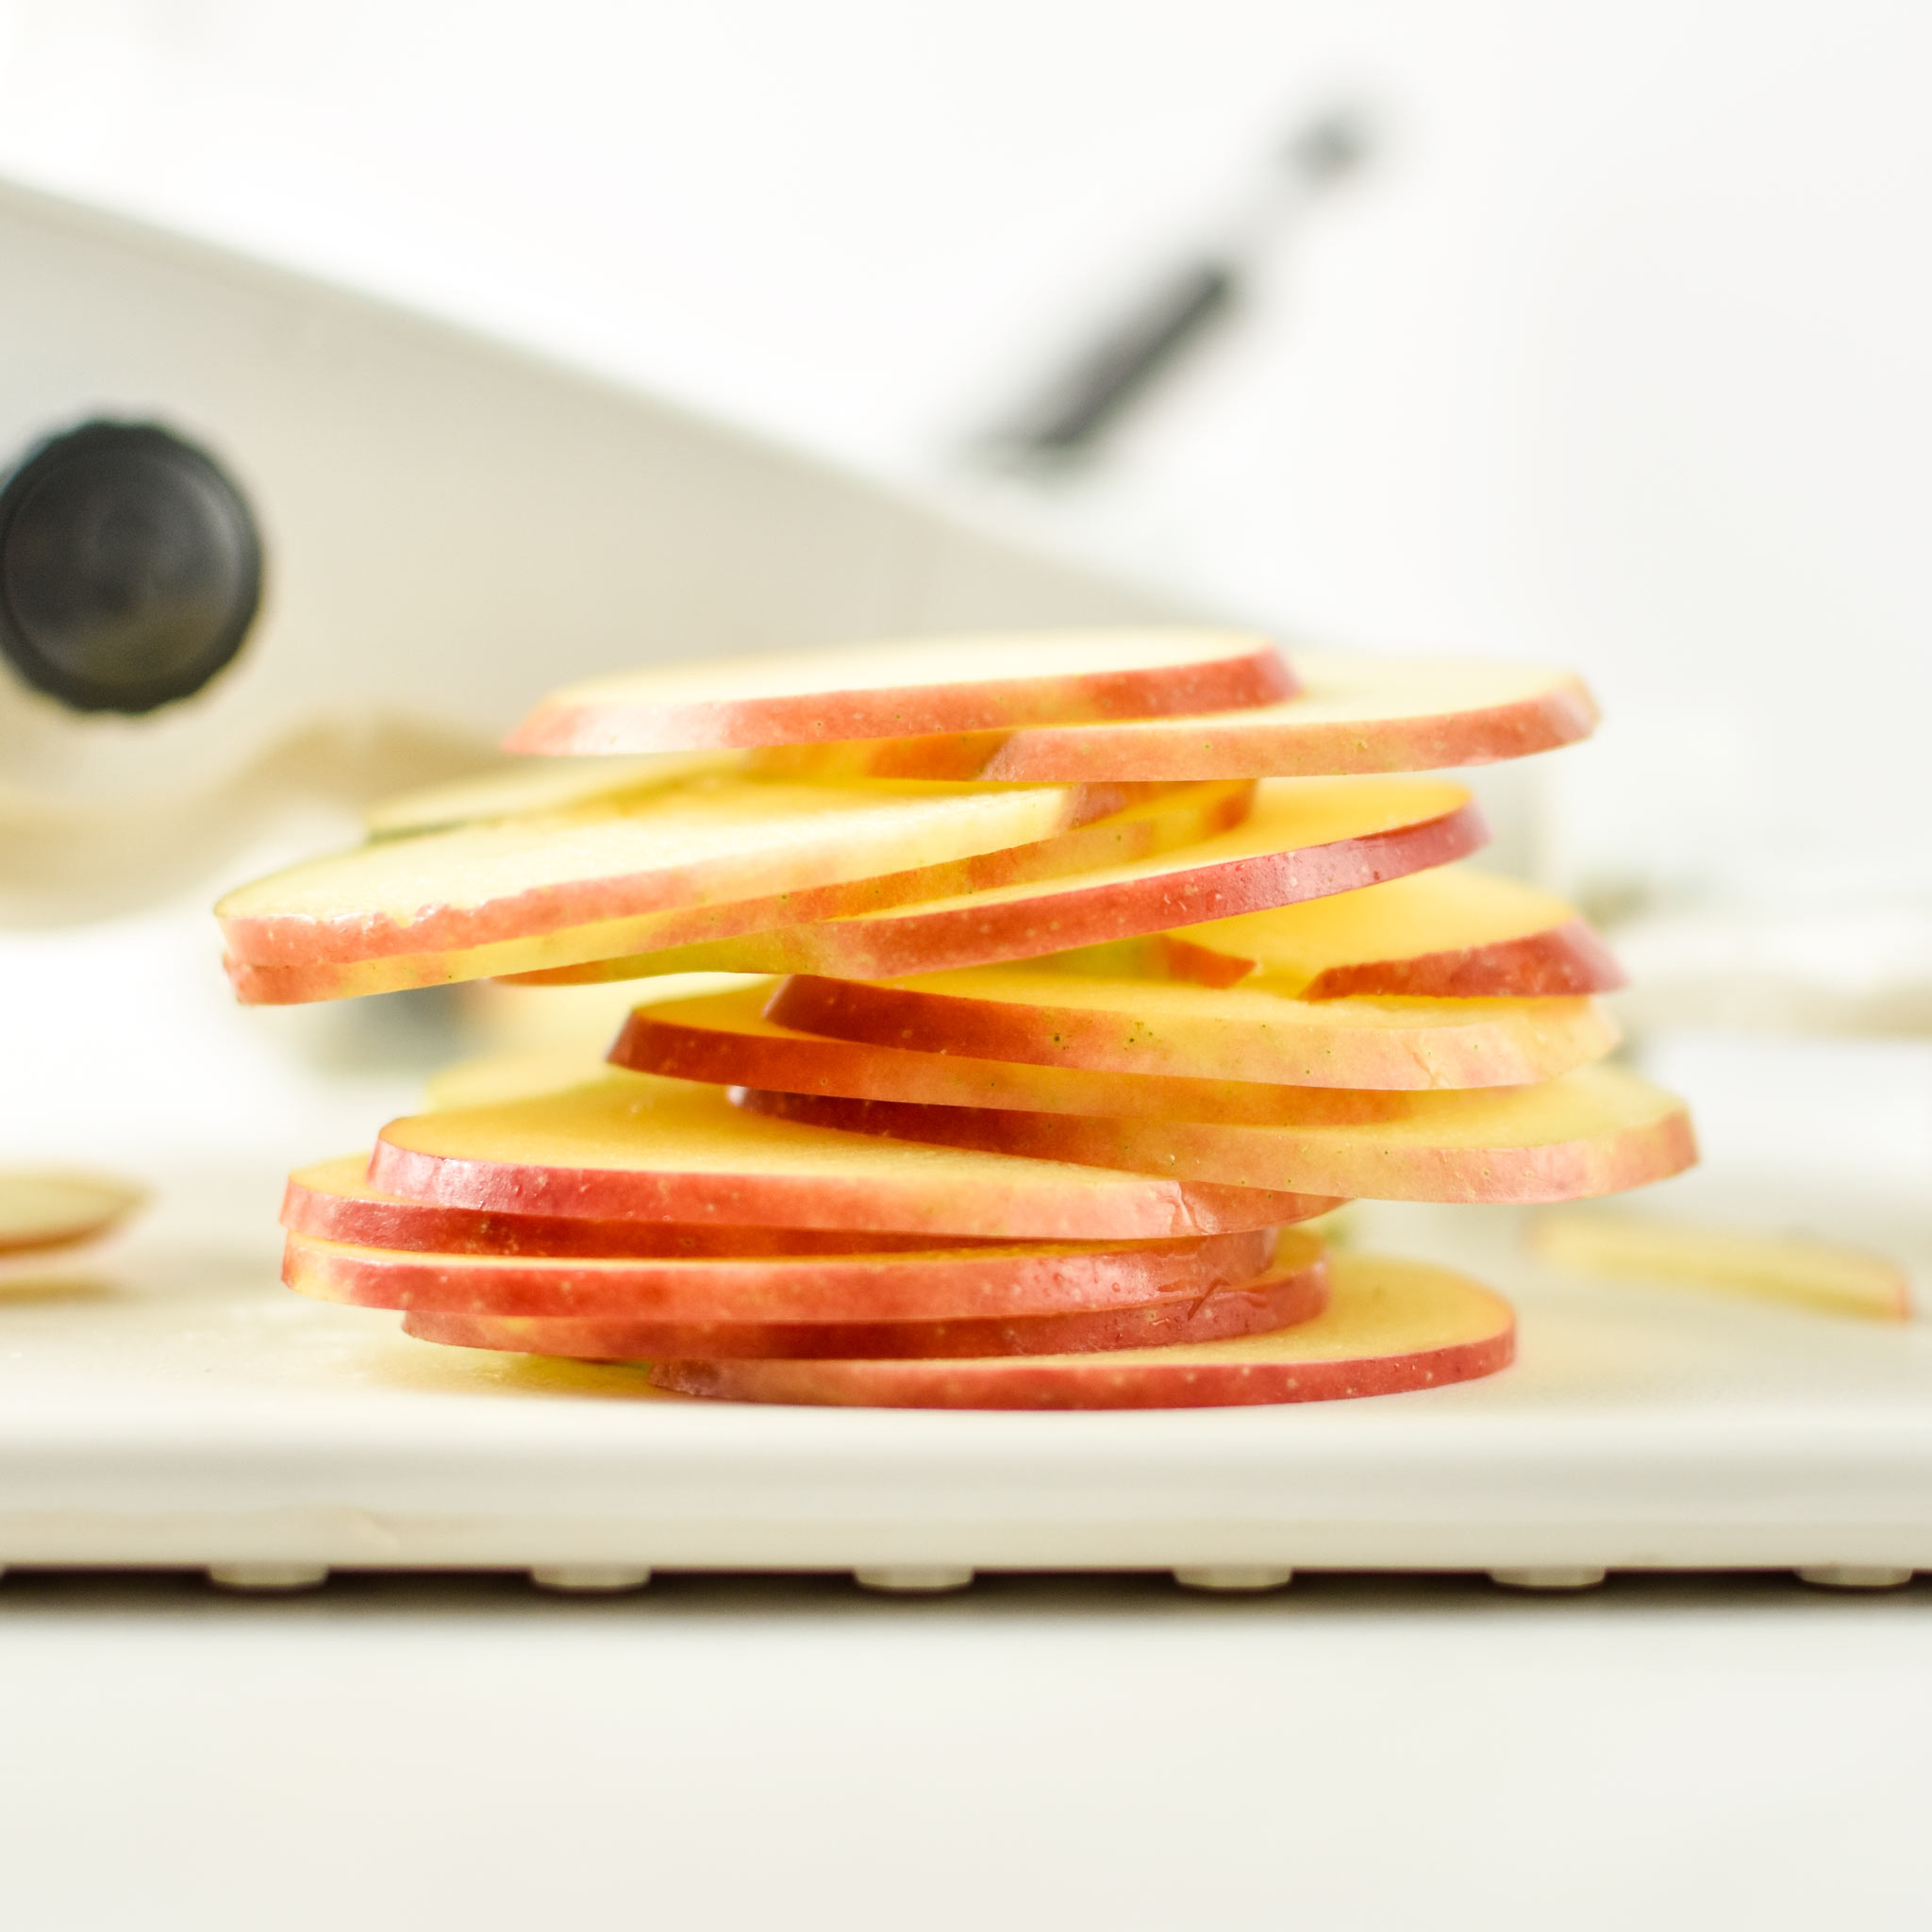 Apples sliced with the mandoline for how to make apples in an air fryer